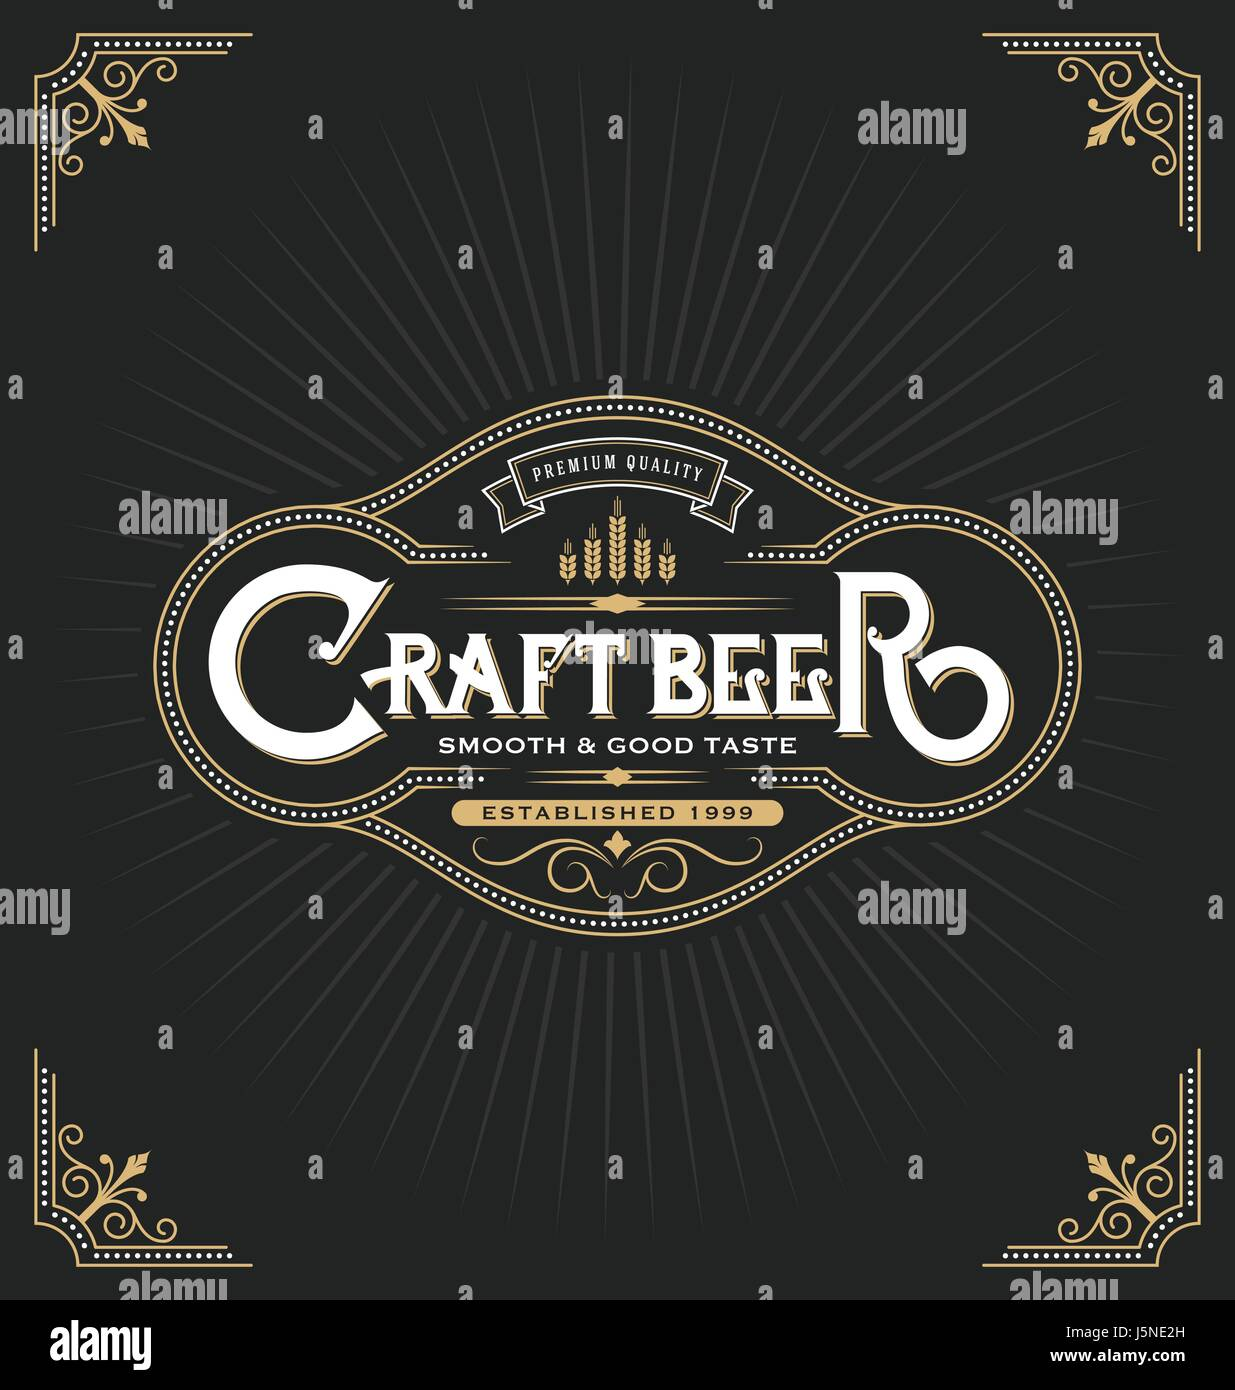 Craft Beer Sticker Label Design Vintage Frame Template Suitable For